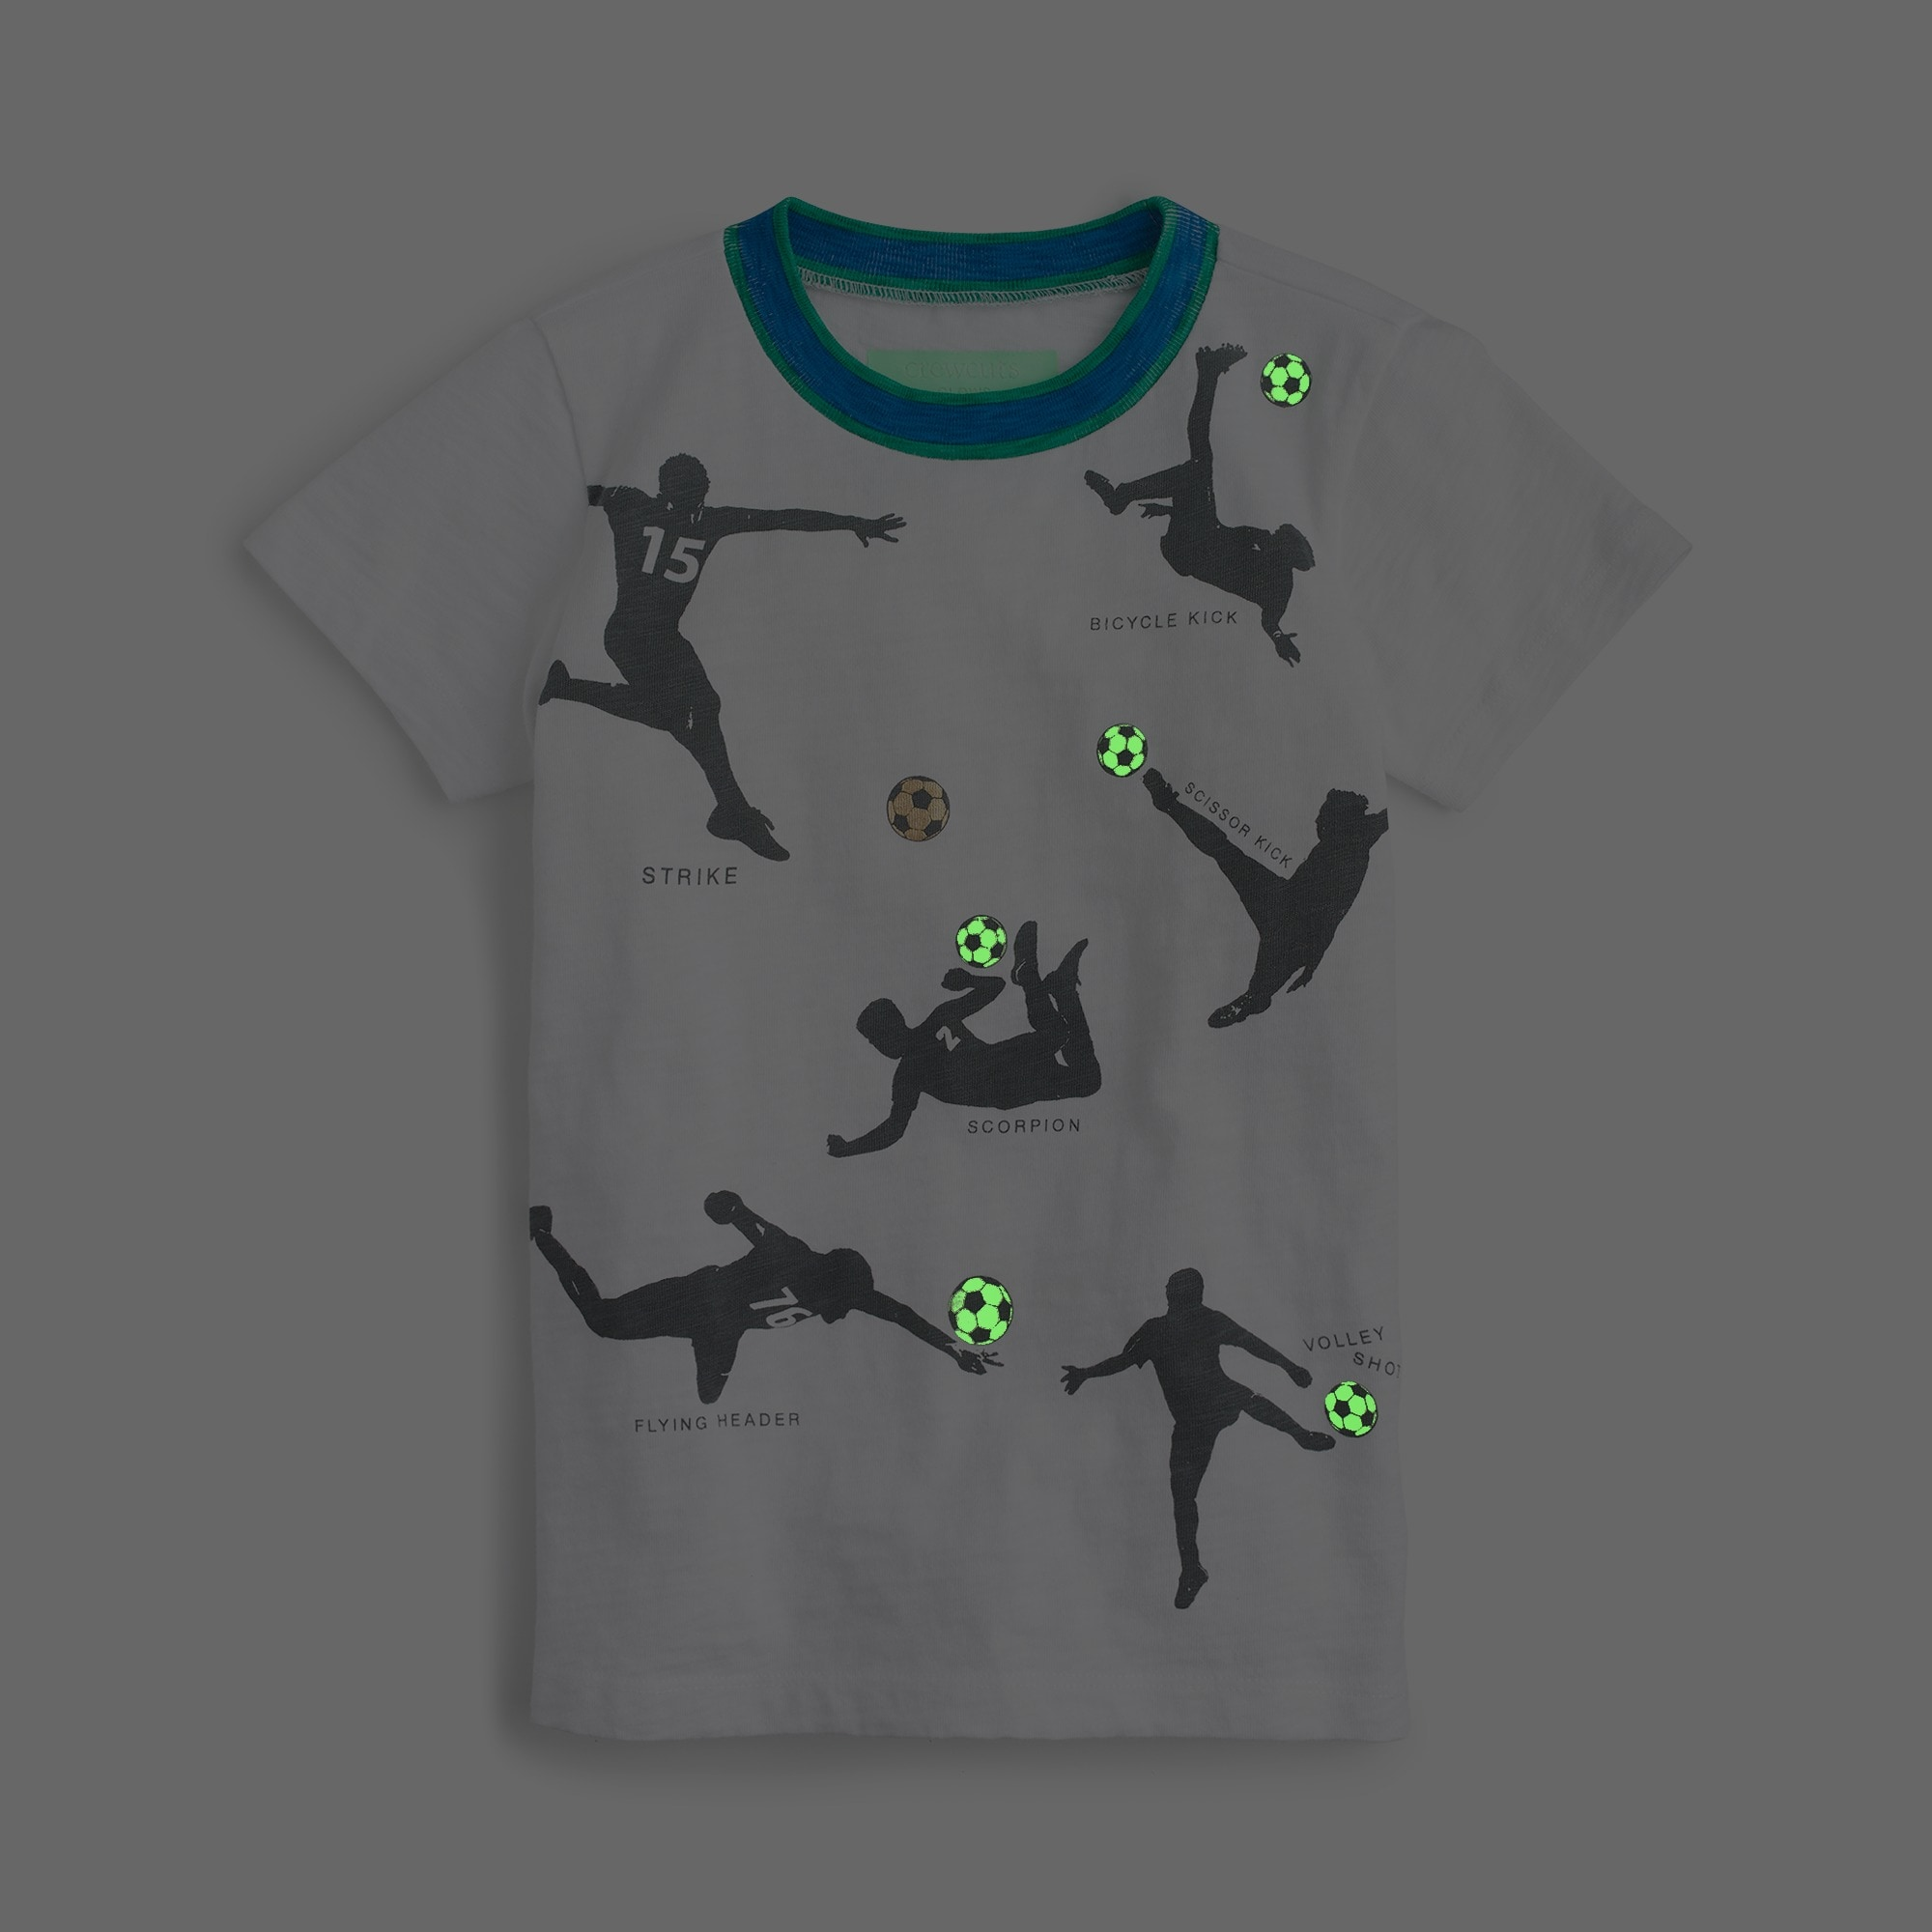 Boys' glow-in-the-dark soccer T-shirt